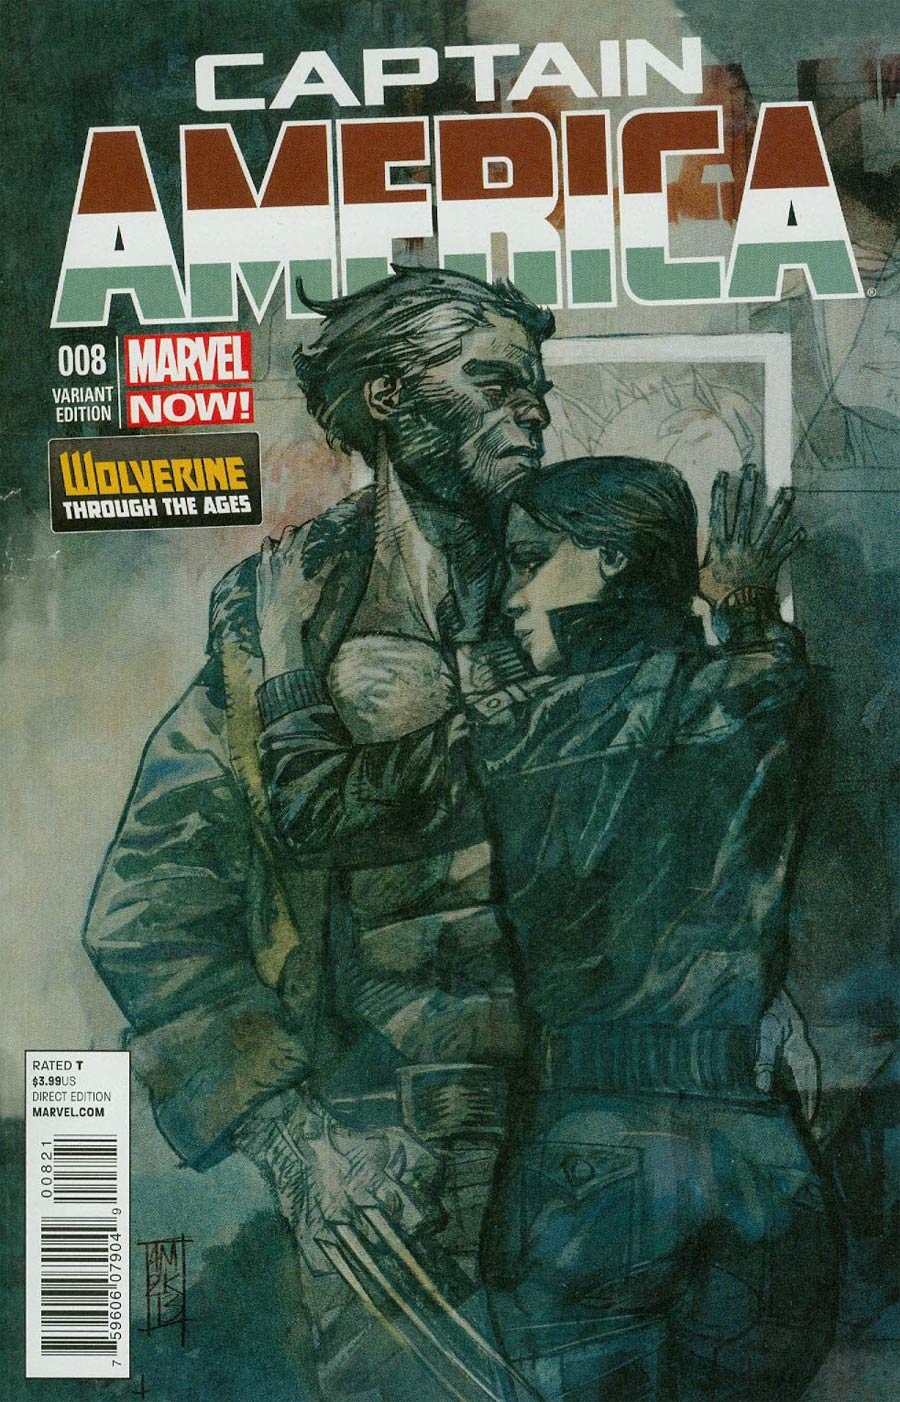 Captain America Vol 7 #8 Cover B Incentive Wolverine Through The Ages Variant Cover